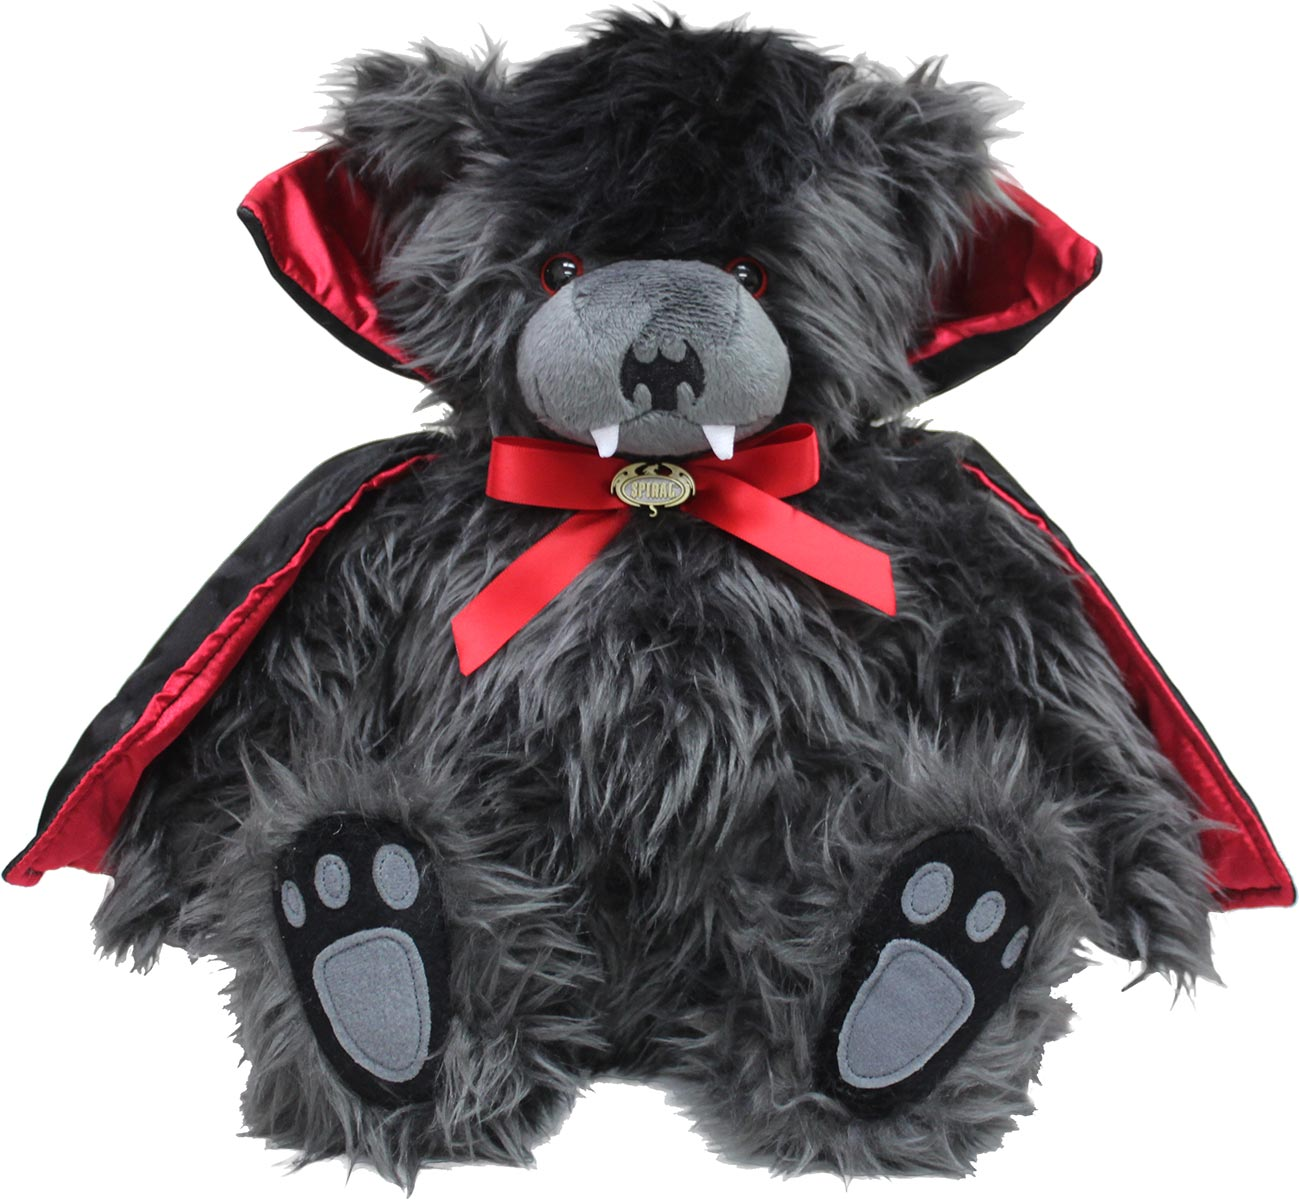 SPIRAL Ted The Impaler Soft-Plüschteddy 30 cm  F028A851